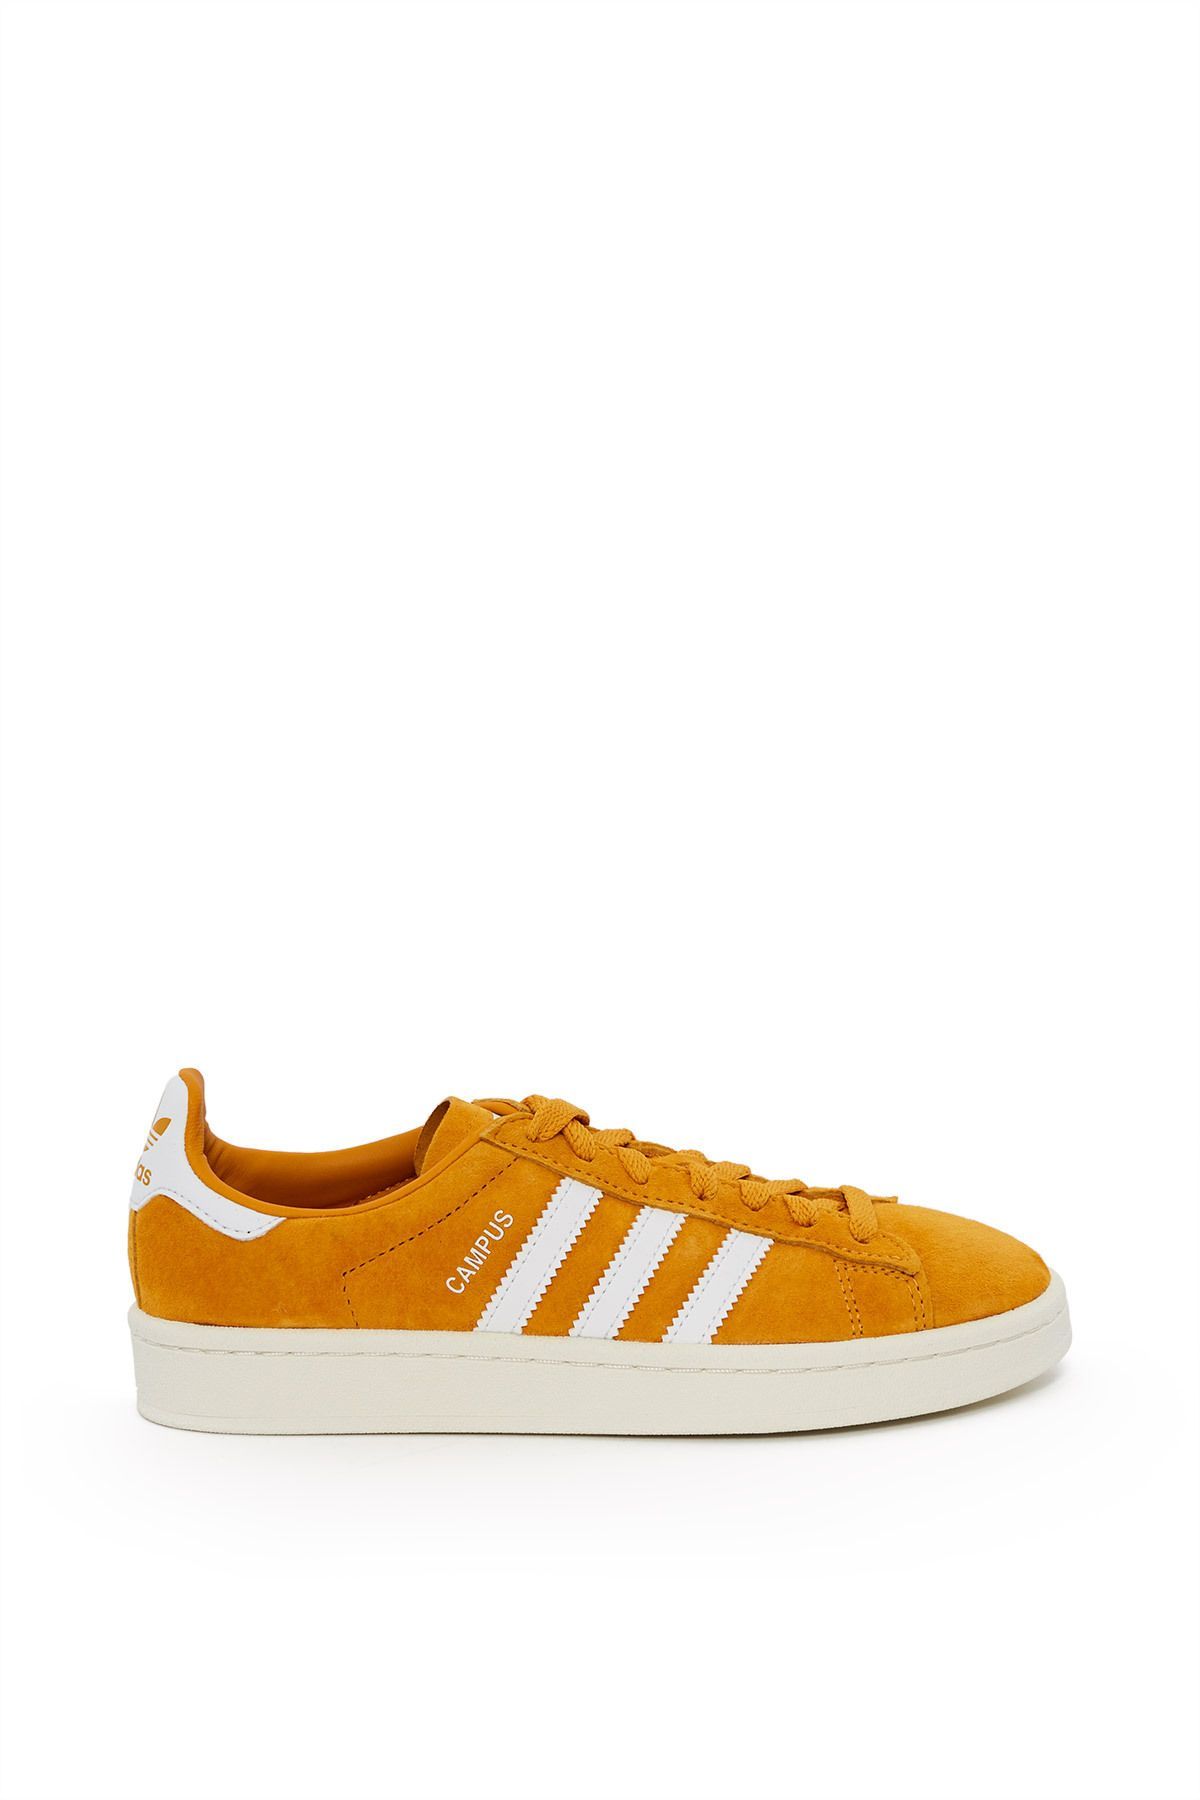 Adidas Originali, Orange Campus Scarpe Di Adidas Originali